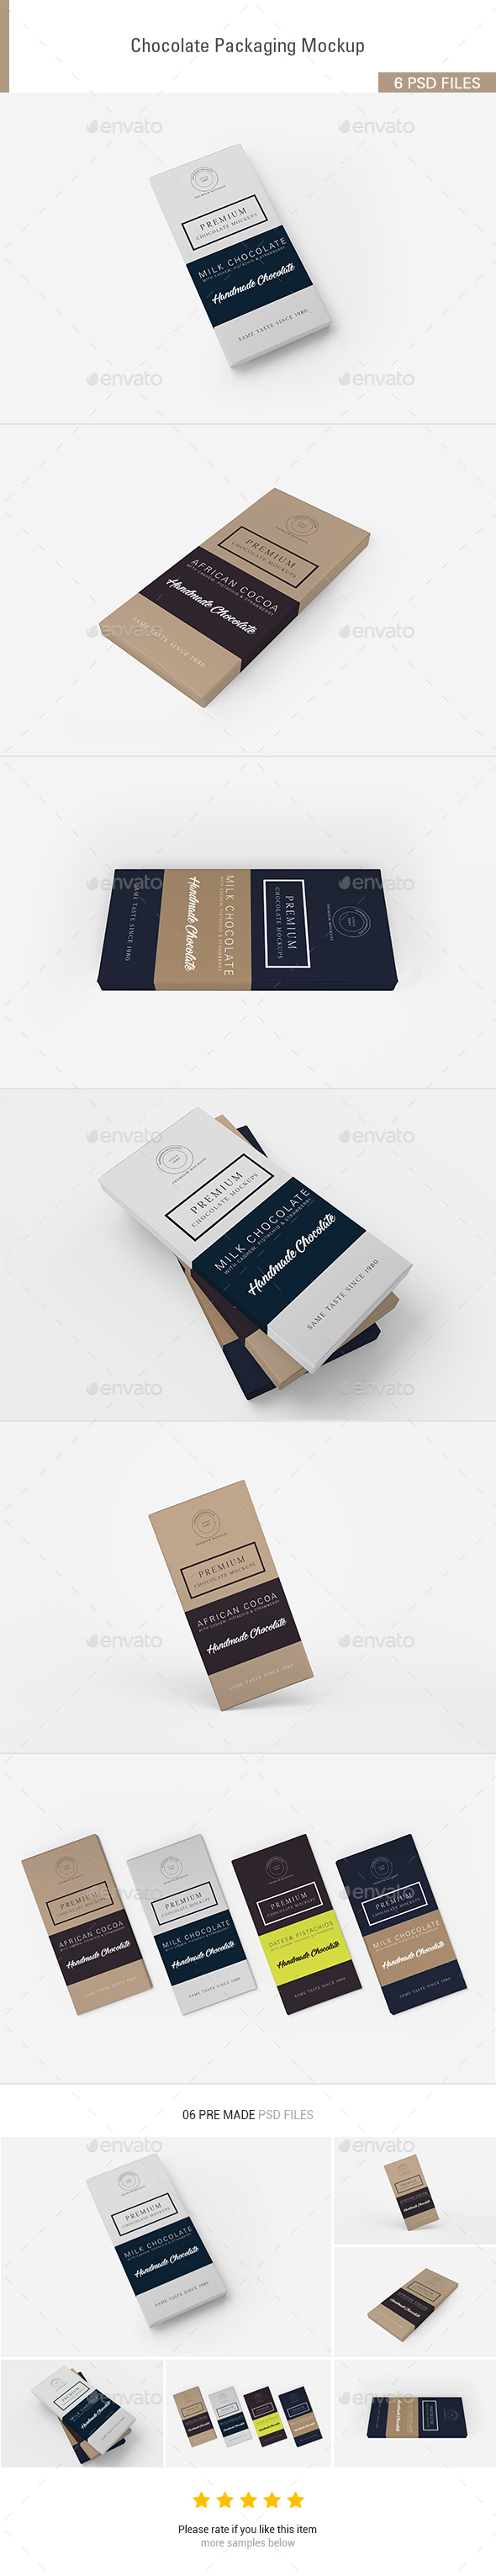 Chocolate Packaging Mockups - Product Mock-Ups Graphics